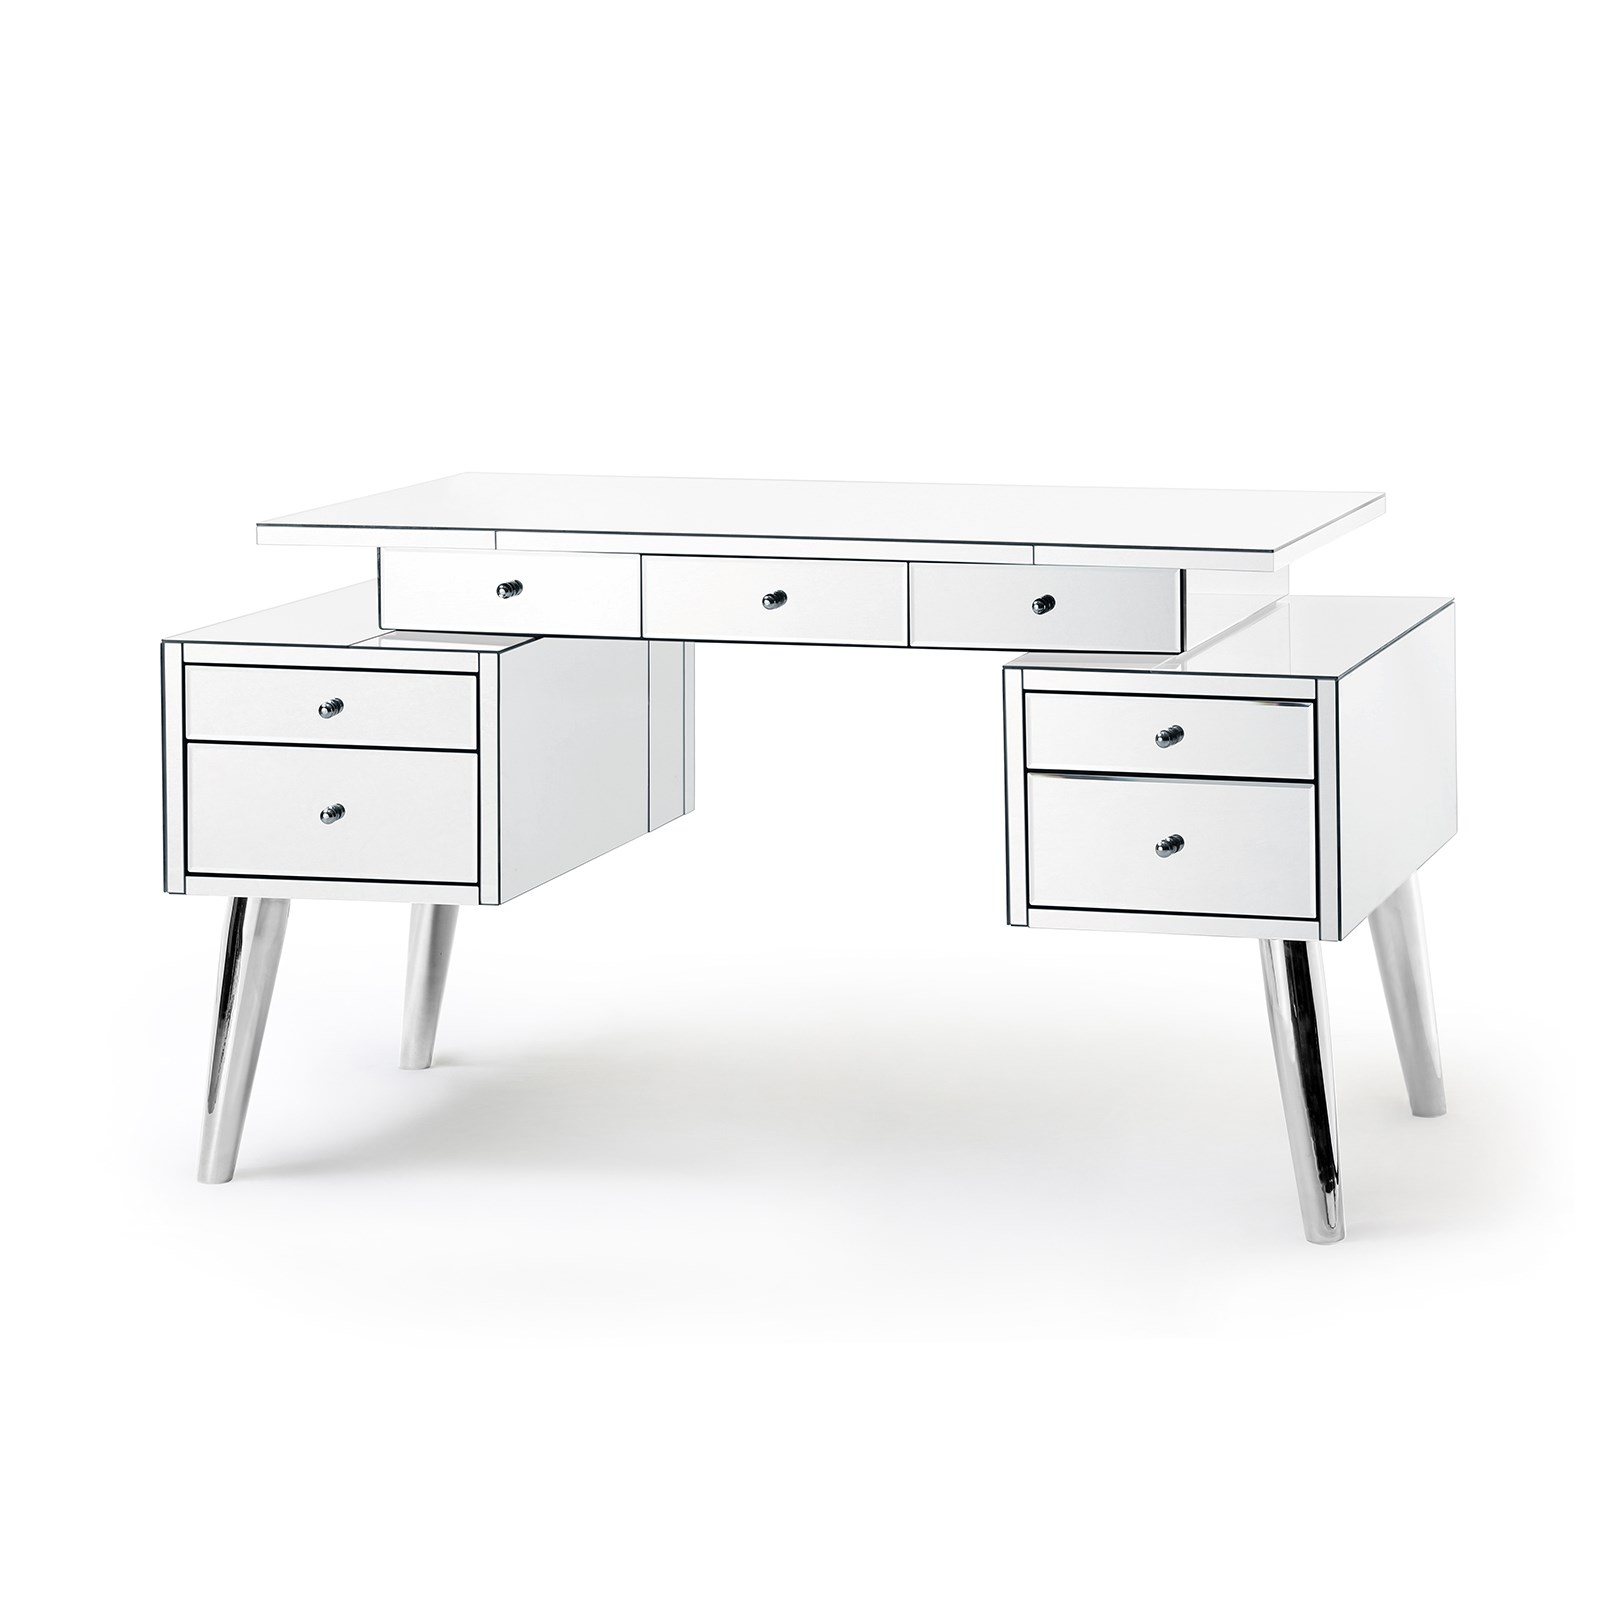 New Serena Mirrored Desk, Mirror - Bungalow 5 CC53